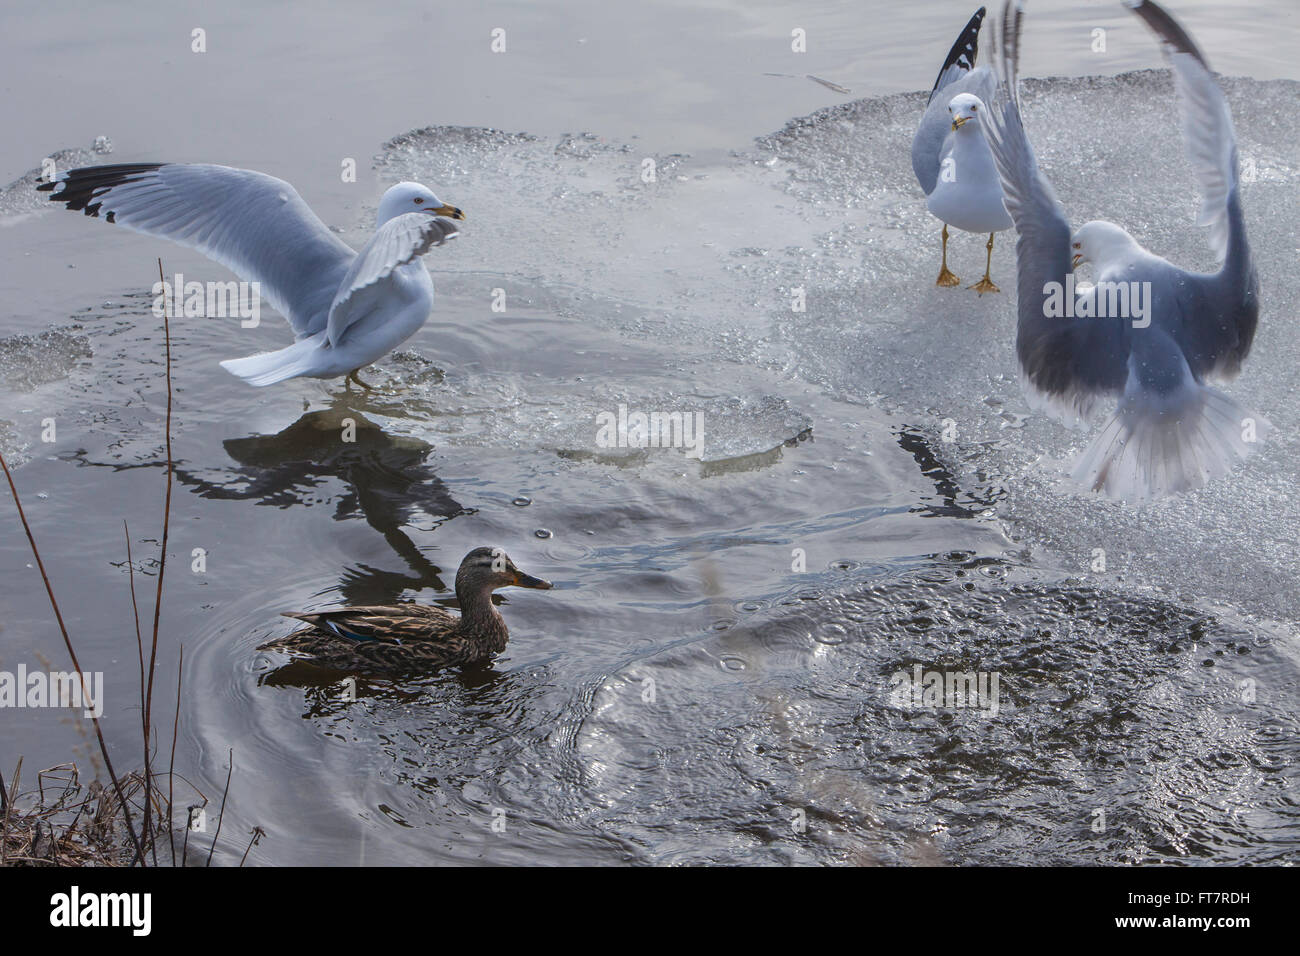 Canadian Ducks and Seagulls frolicking in the melting snow and ice. - Stock Image